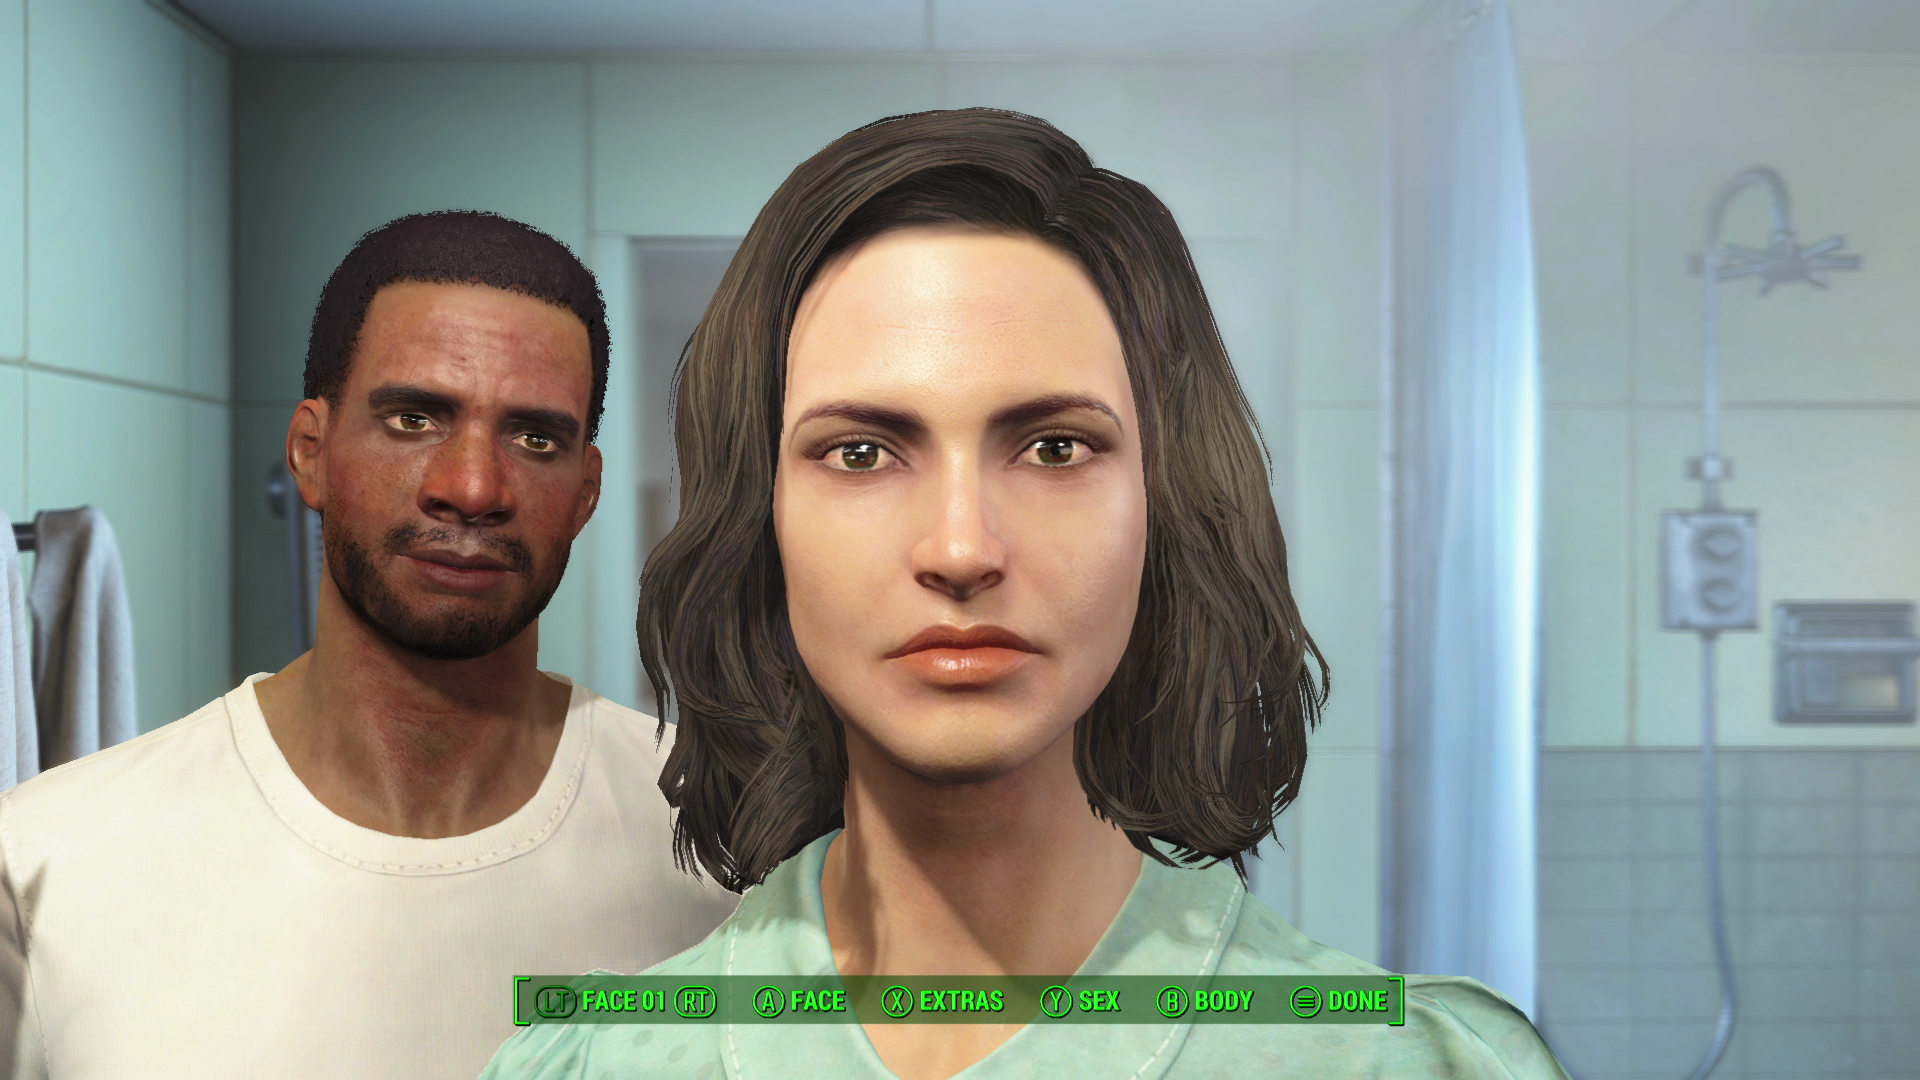 How Fallout 4 handles romance, character progression and more